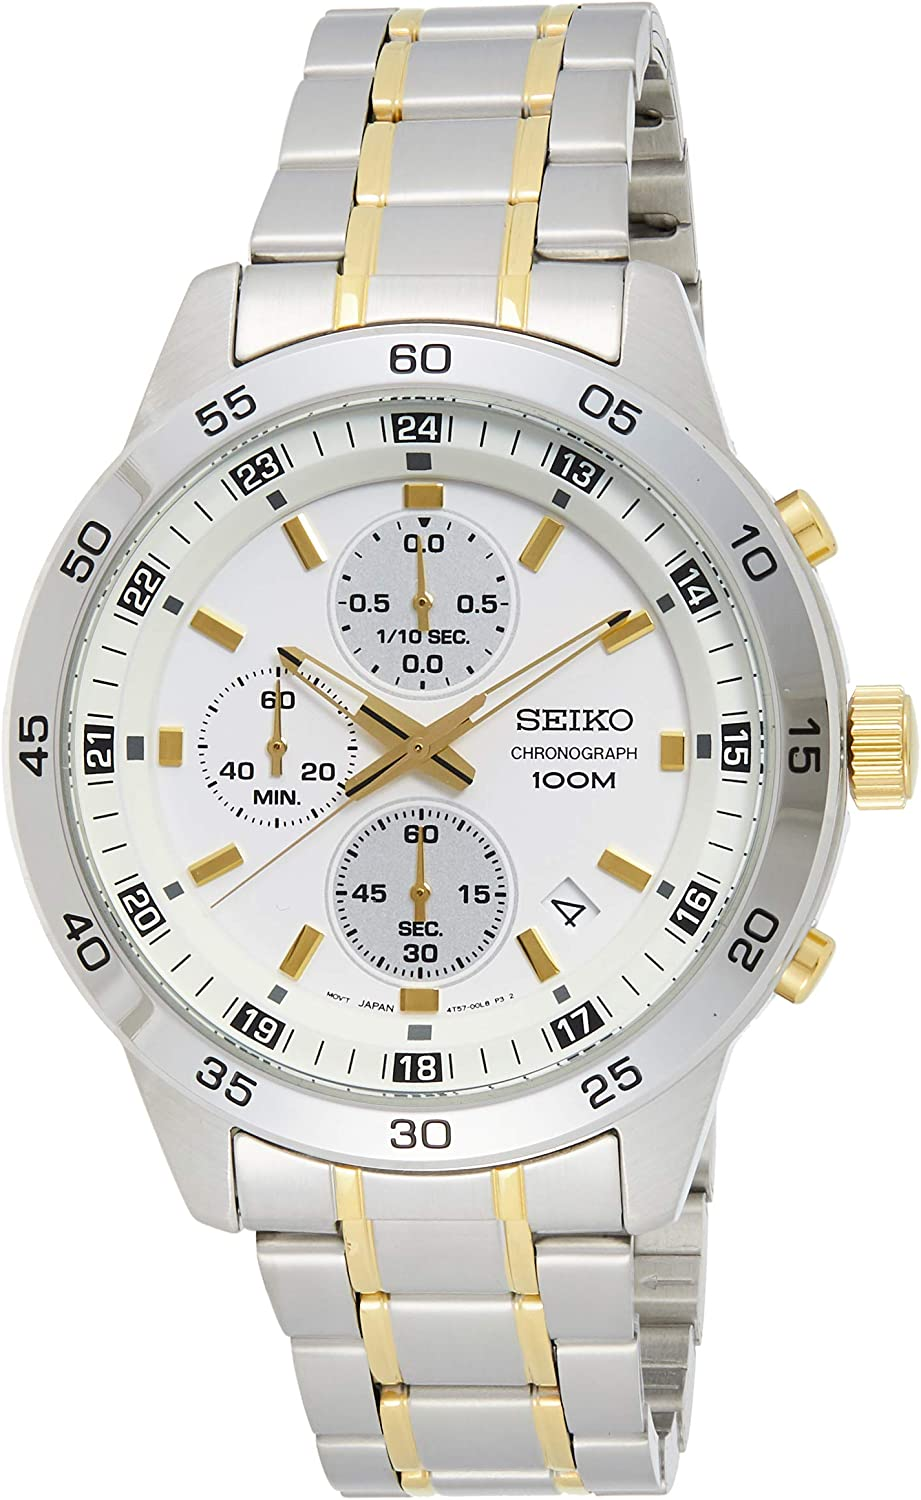 Seiko Chronograph Dial Virginia Beach Mall All stores are sold Watch SKS643P1 Bracelet